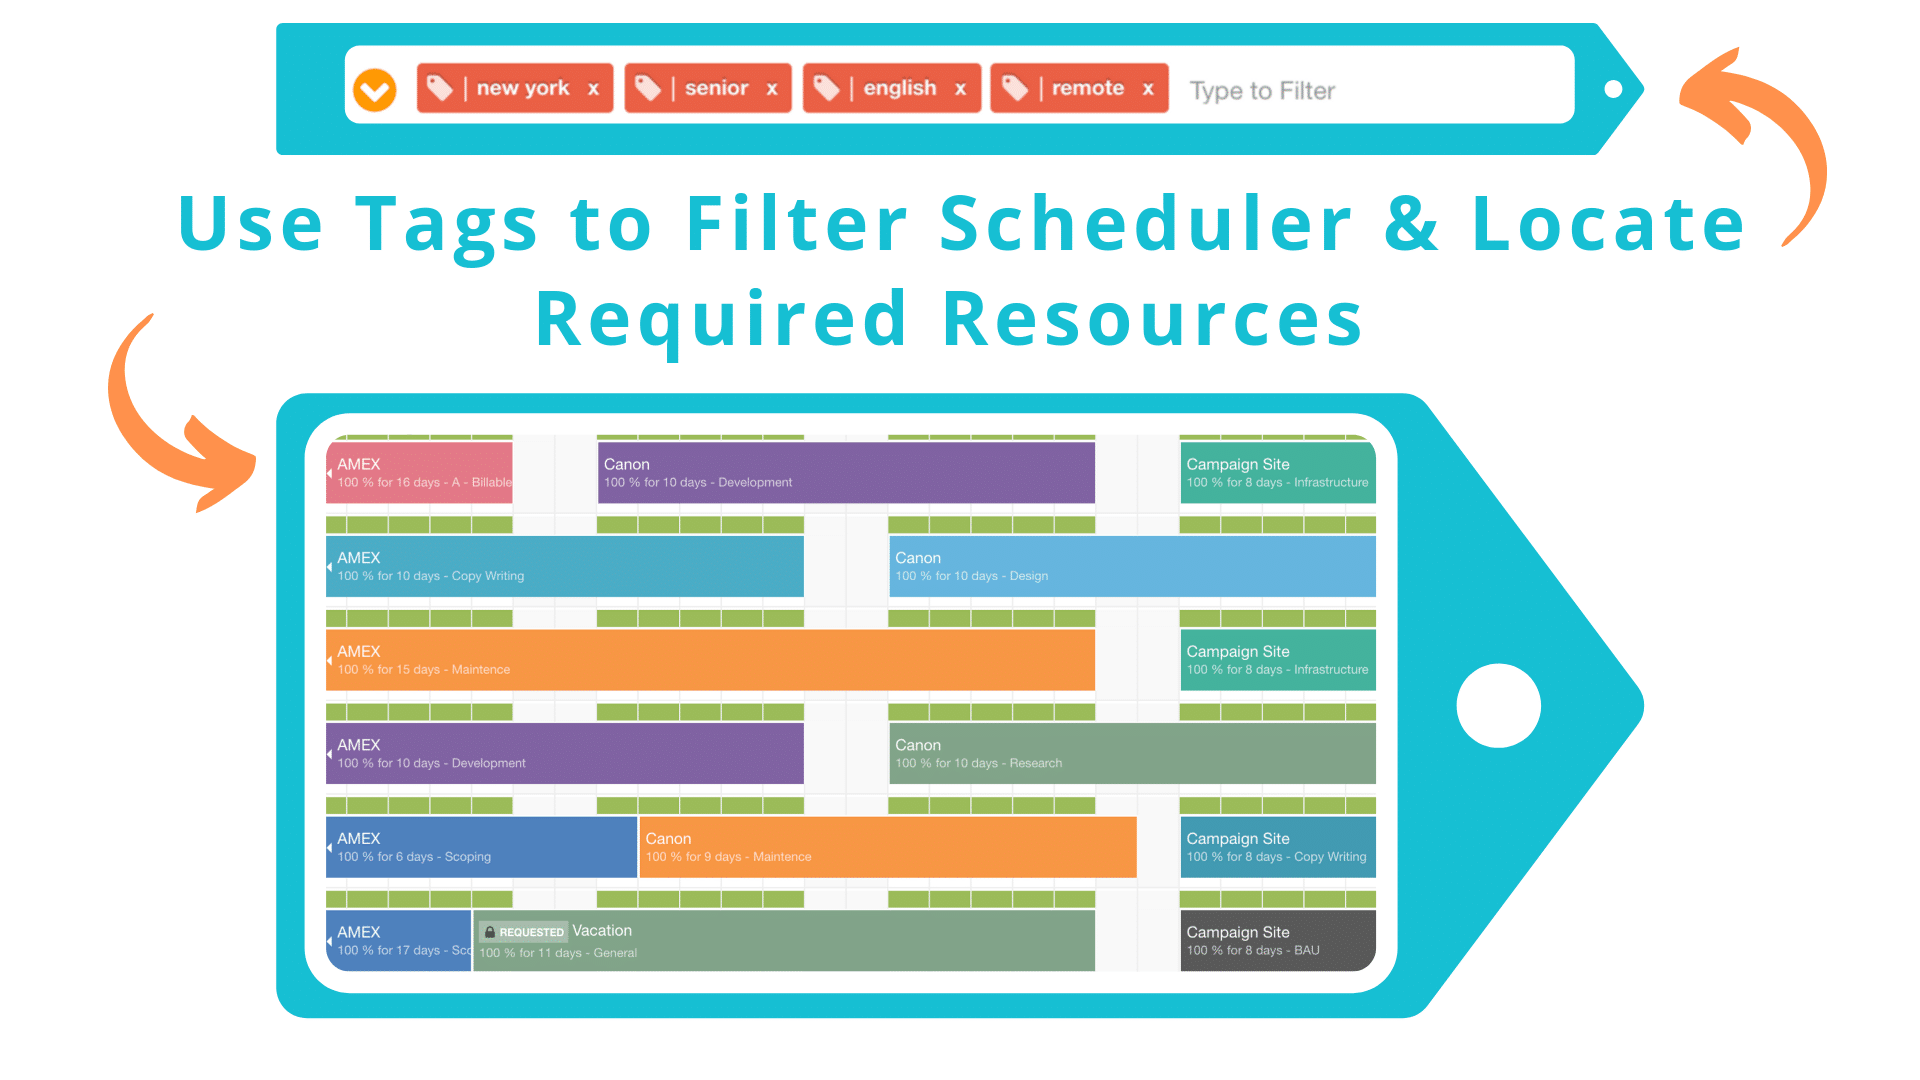 Resource_Tags_Filter_Schedule